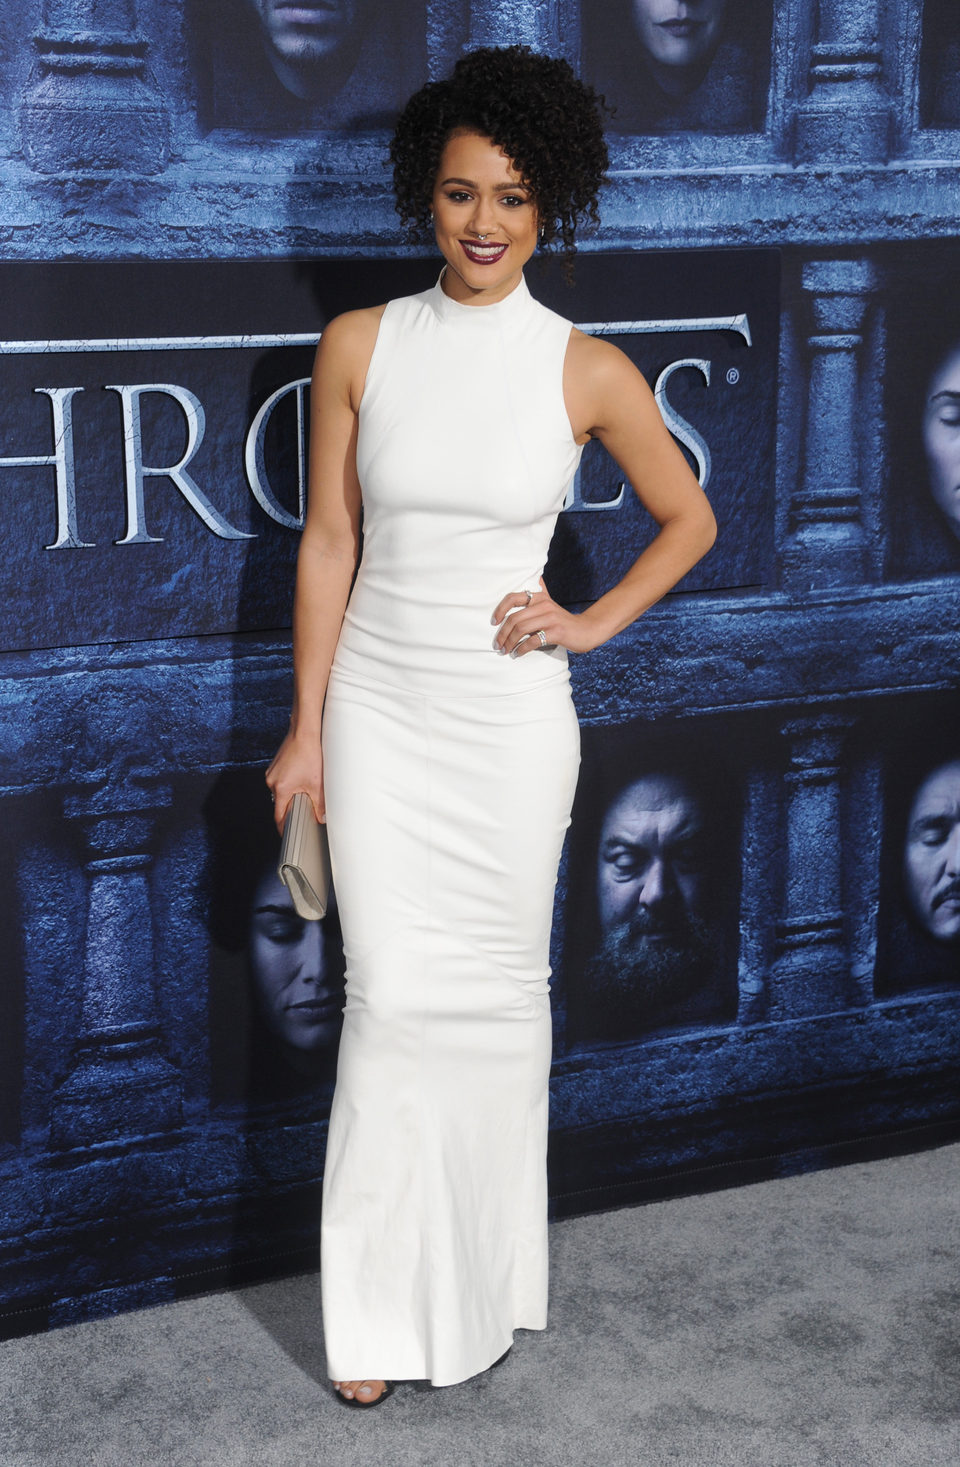 Nathalie Emmanuel at the premiere of 'Game of Thrones' Season Six